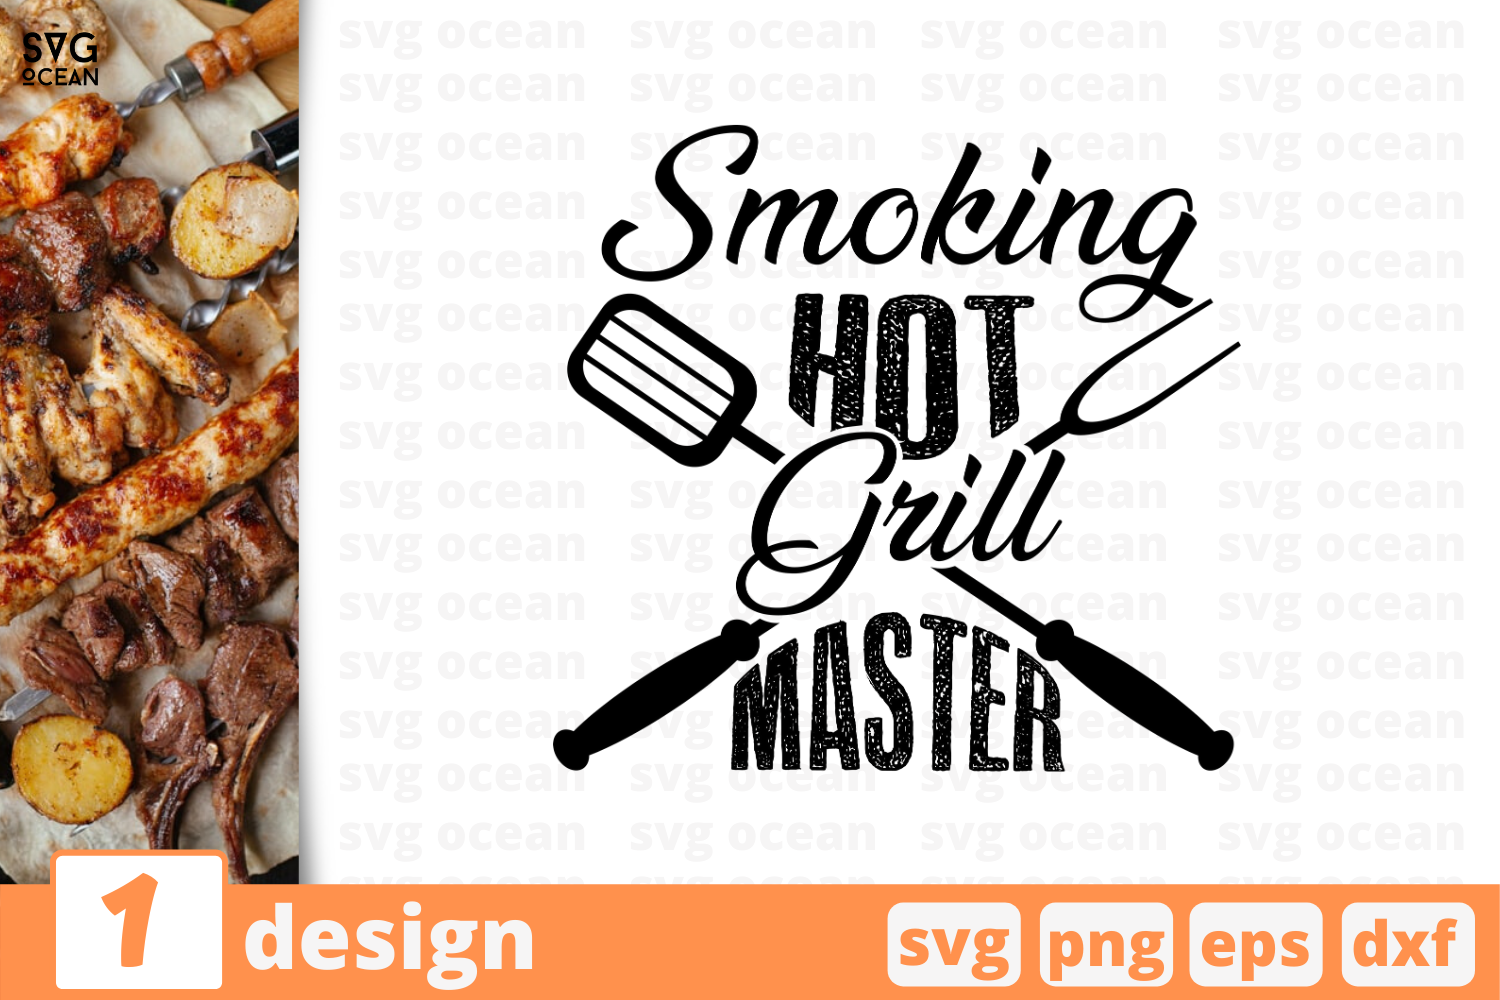 Download Free Smoking Hot Grill Master Graphic By Svgocean Creative Fabrica for Cricut Explore, Silhouette and other cutting machines.